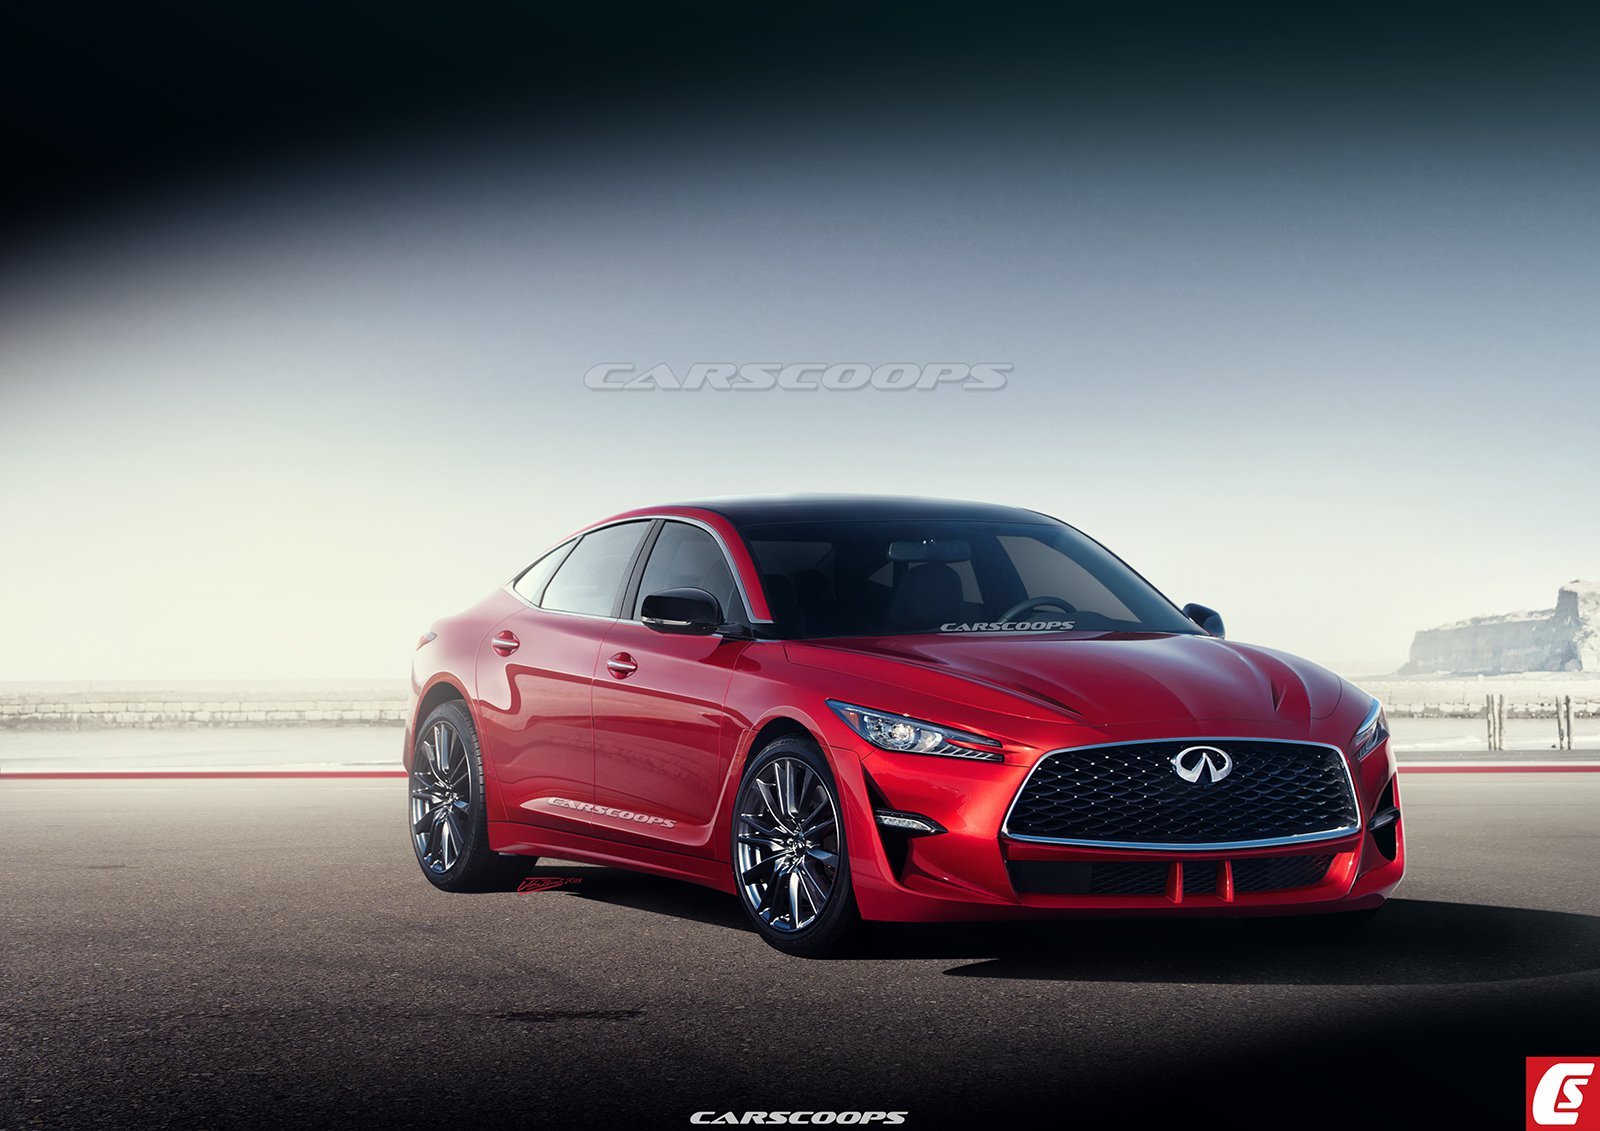 41 The Best 2020 Infiniti Q50 Performance and New Engine